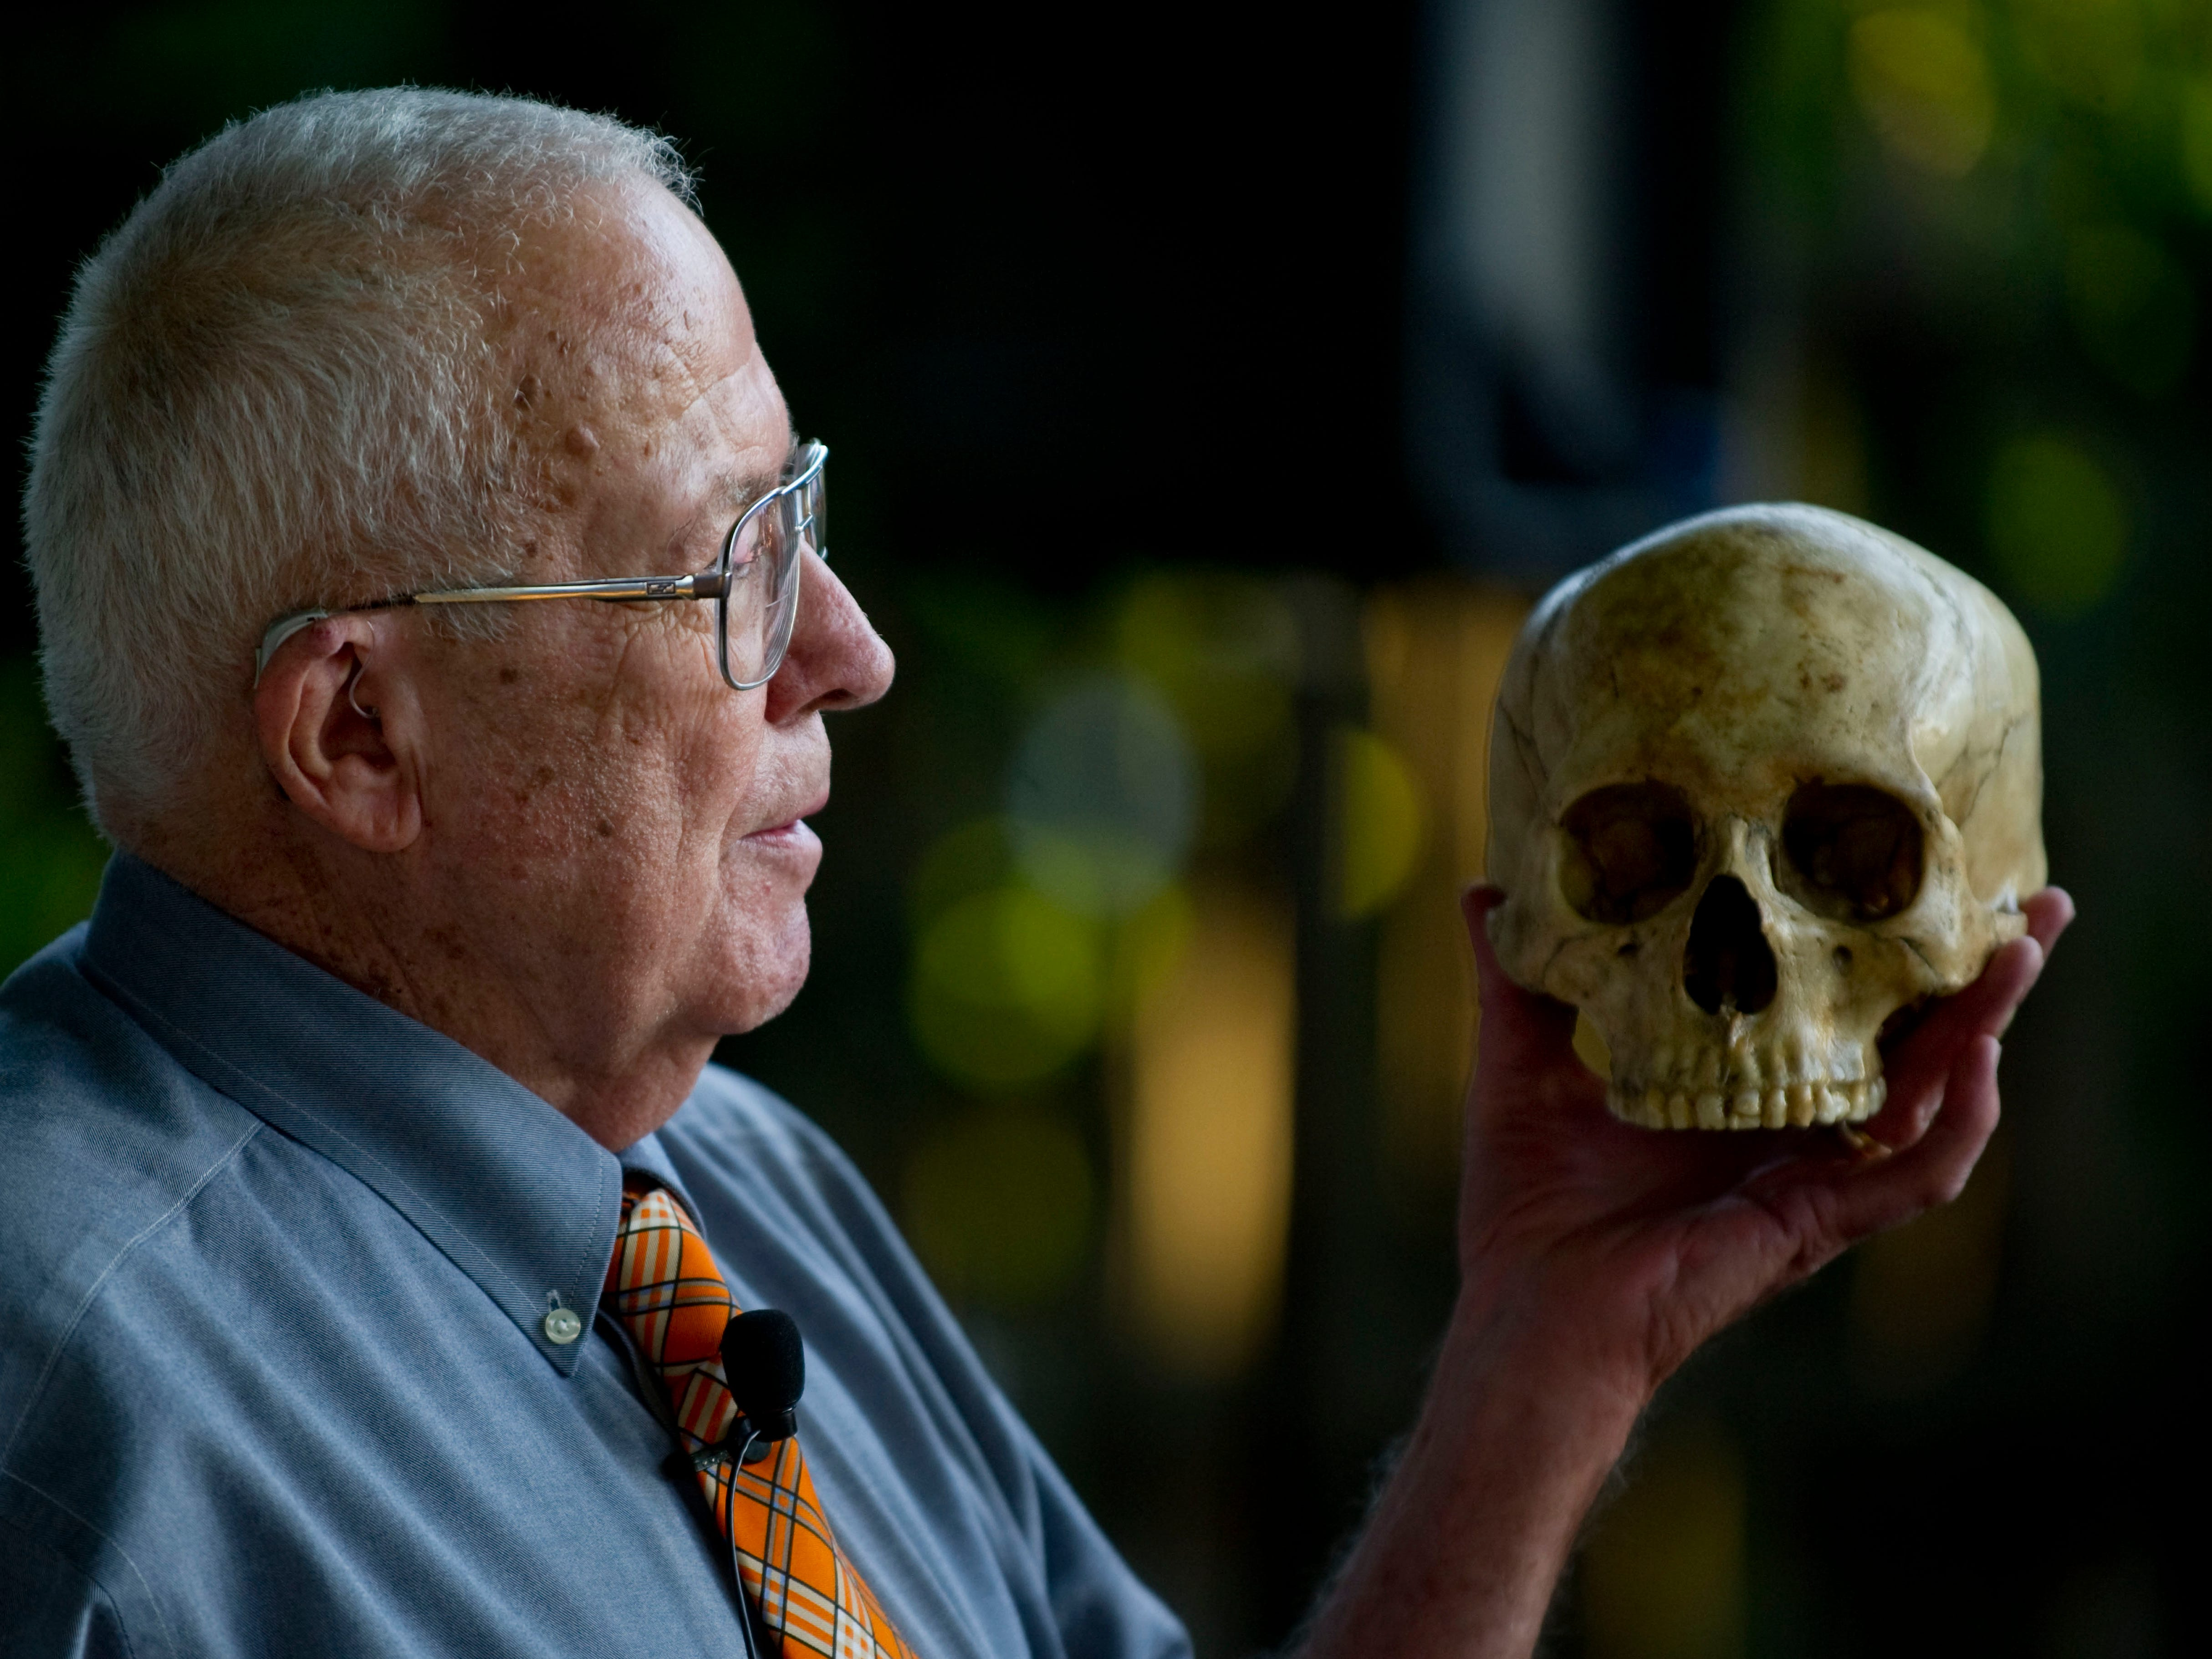 Dr. Bill Bass gives a presentation on his forensic work during a fundraiser at James White Fort on Tuesday, June 26, 2012. 